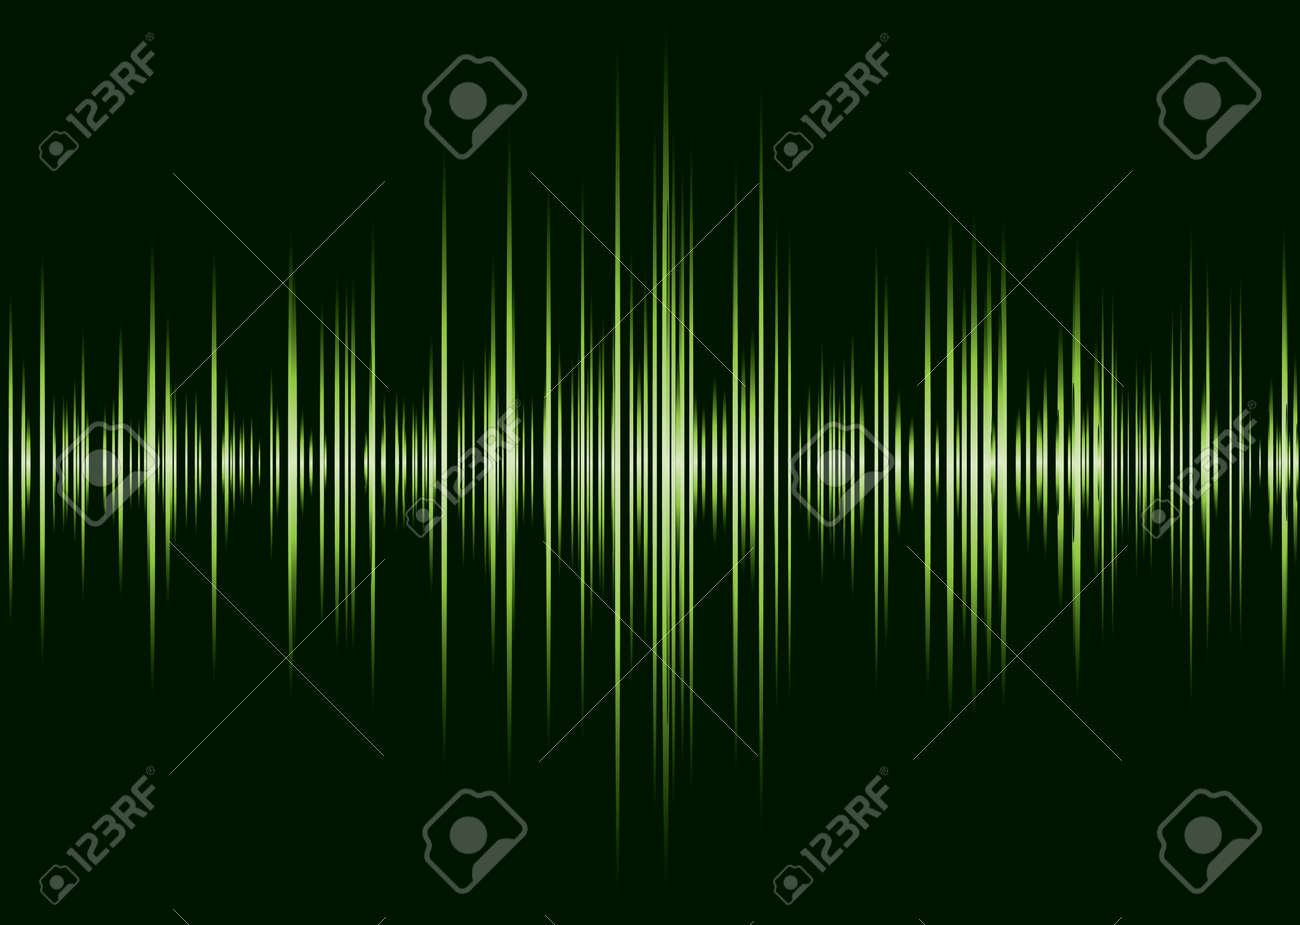 Black and green music inspire graphic equalizer wave and black